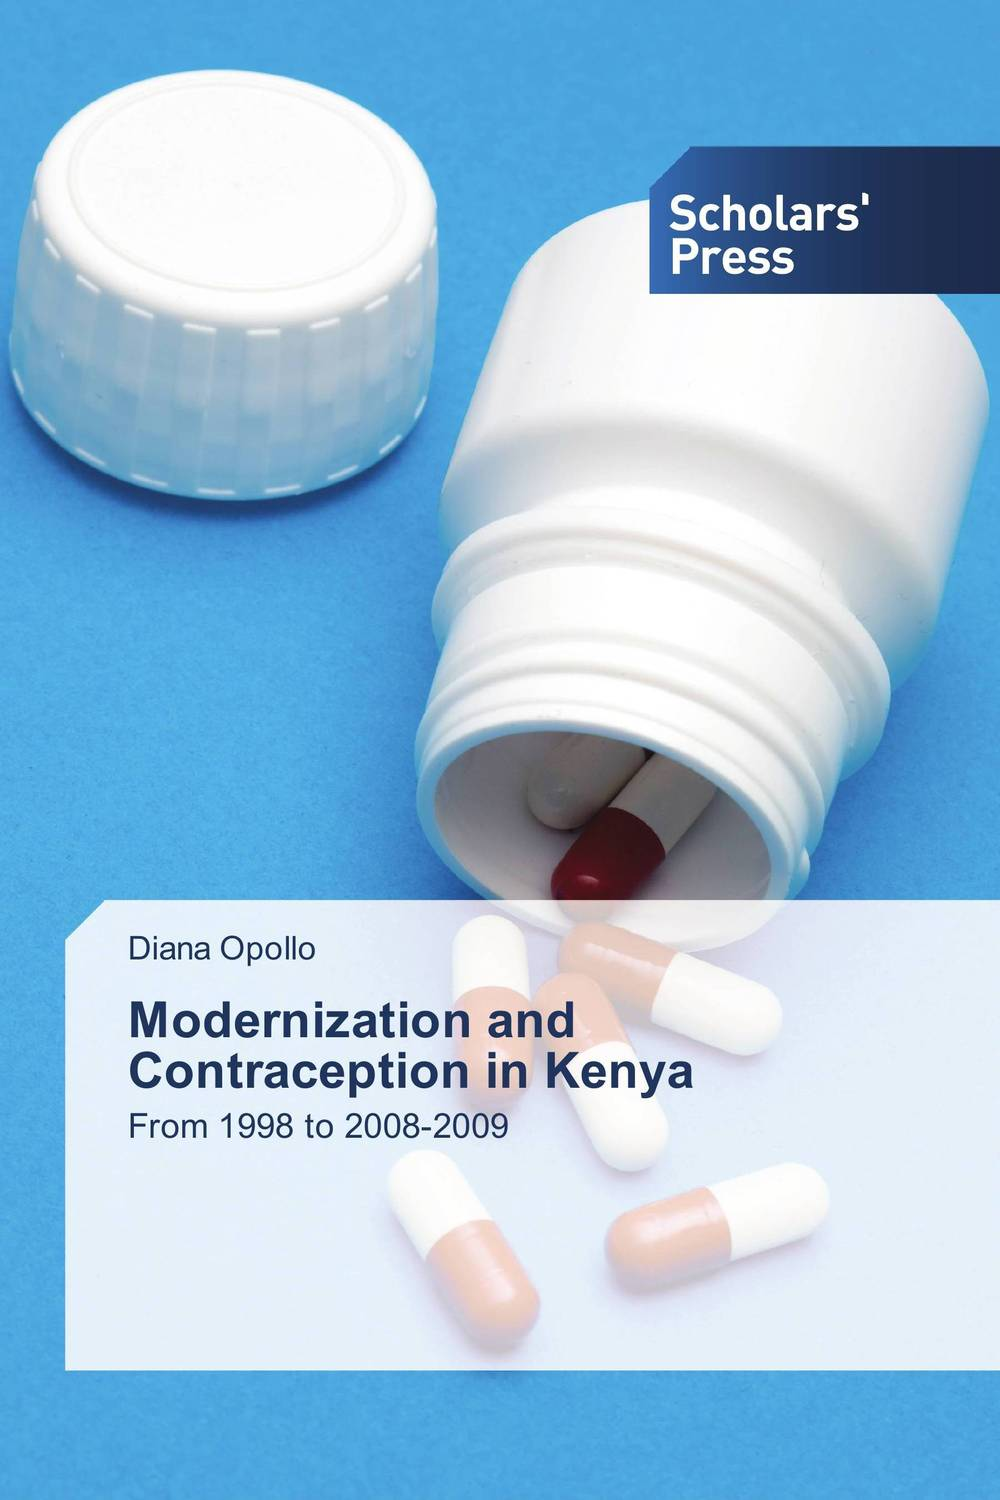 Modernization and Contraception in Kenya